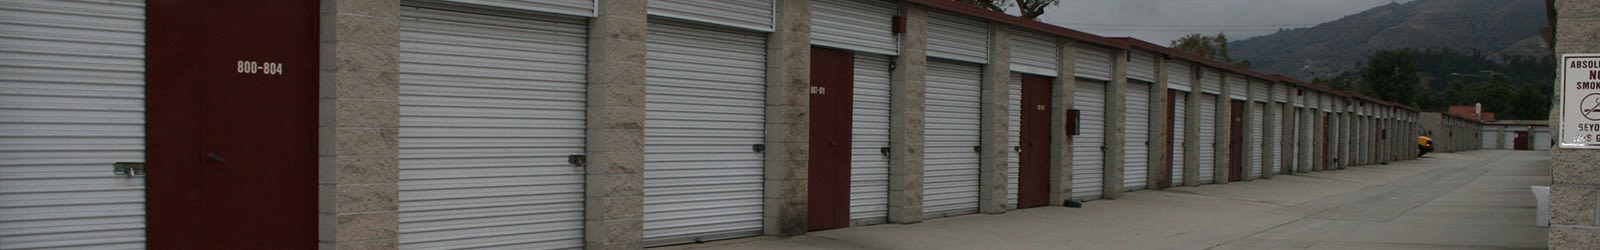 Storage units in San Dimas, CA